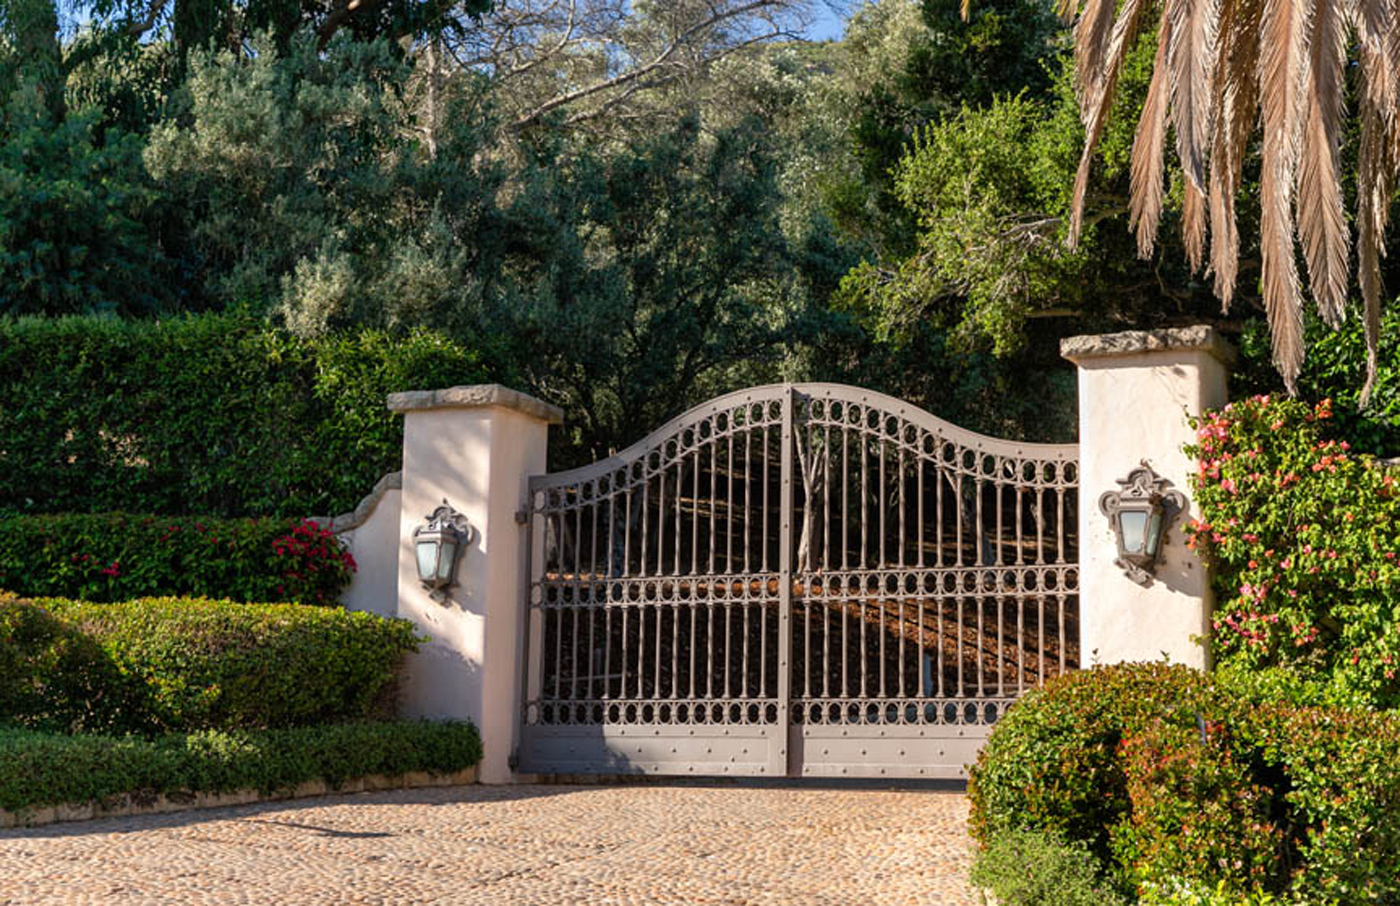 Property for Sale: 900 Knollwood Drive, Montecito CA 93108 List Price $19,250,000 6 Beds 7 baths Montecito Legacy Estate